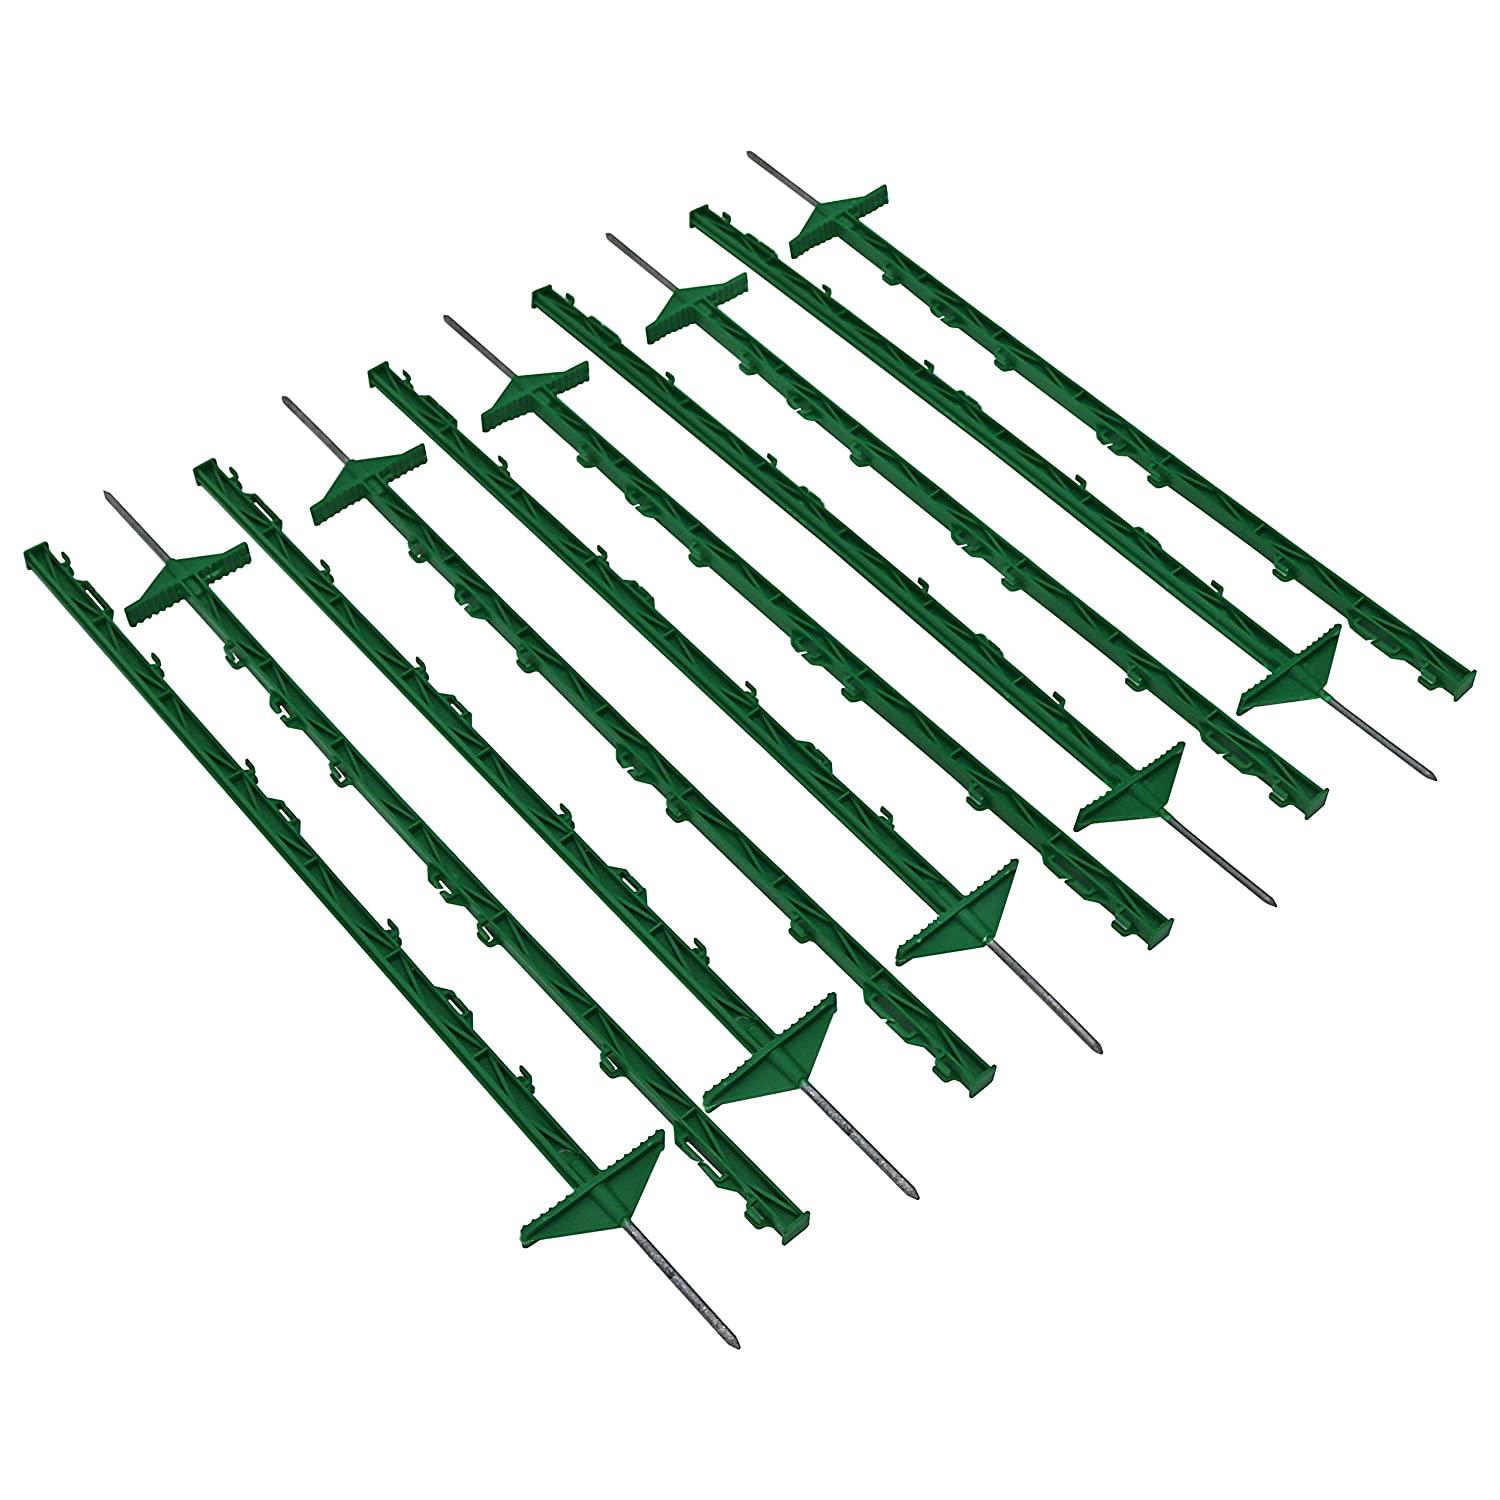 Oypla 1m Green Plastic Electric Temporary Fence Fencing Pins Posts Stakes Pack of 10